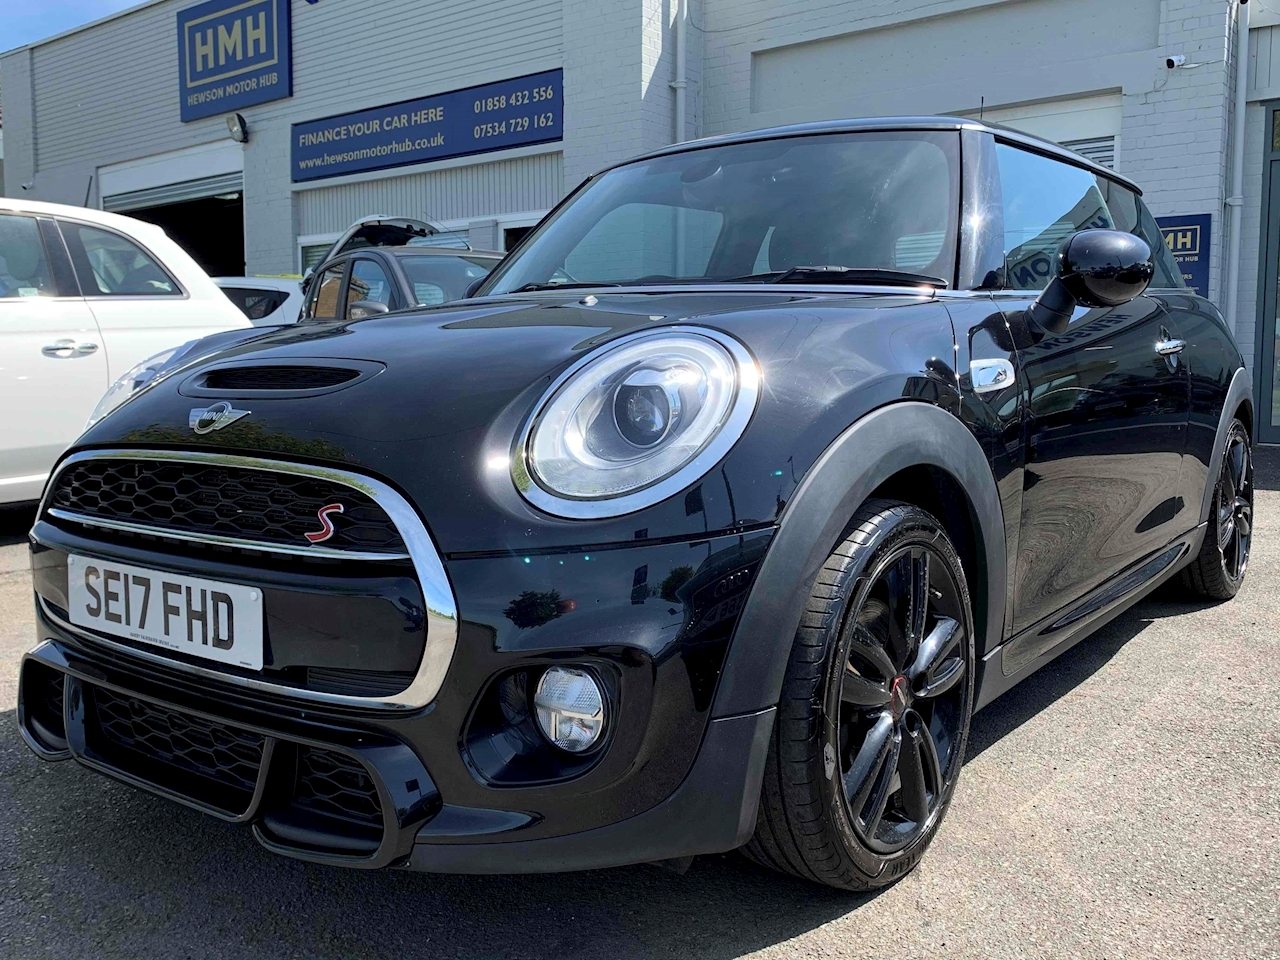 Mini Cooper S Hatchback 2.0 Manual Petrol